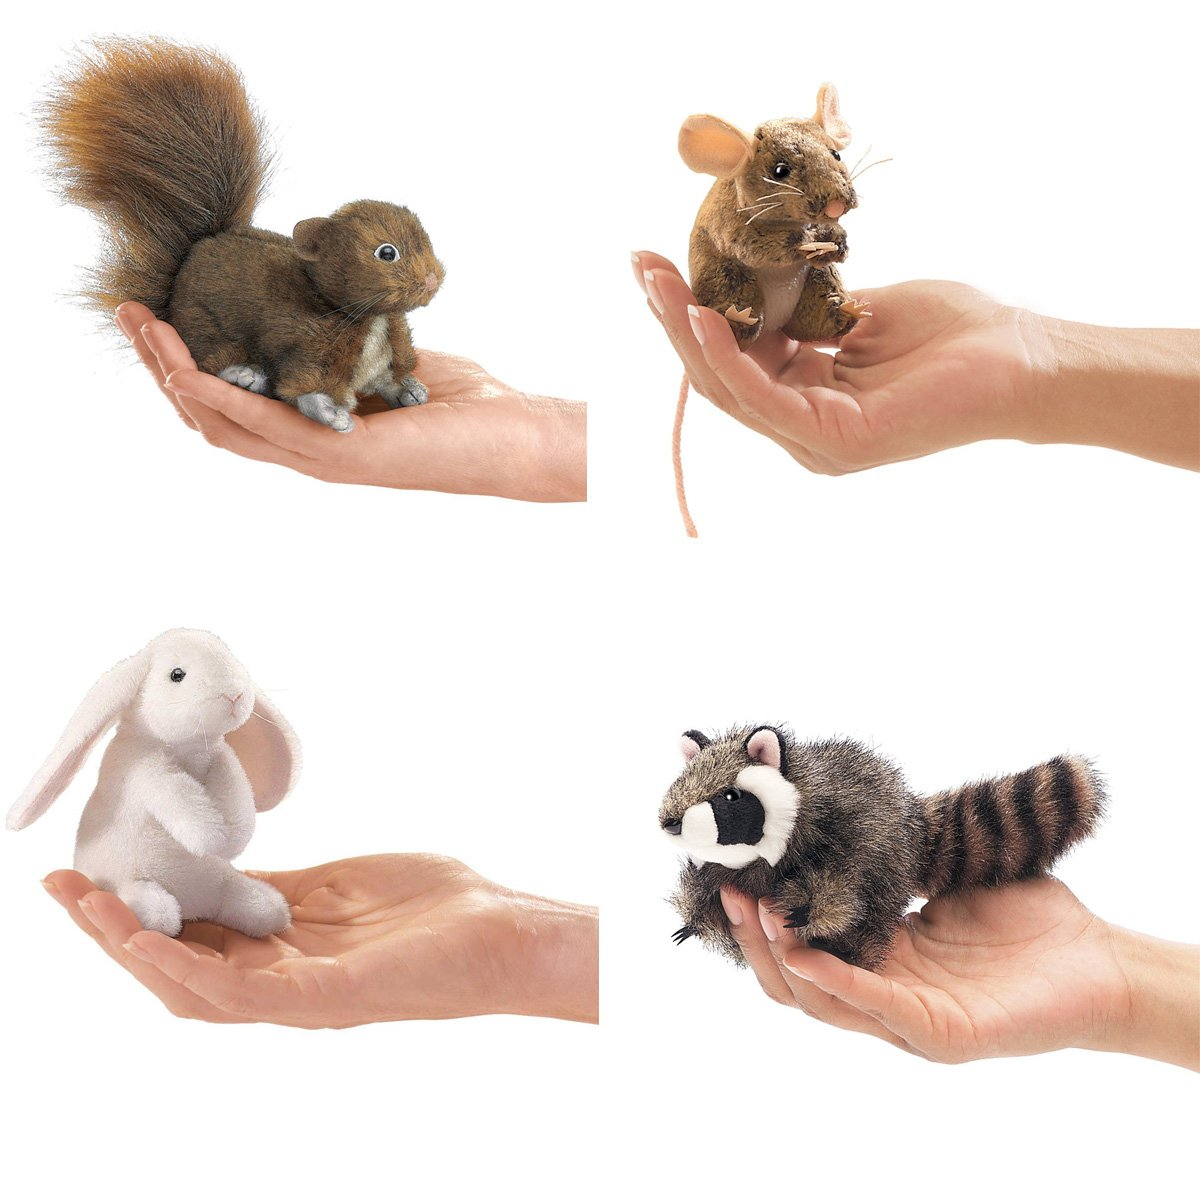 Folkmanis Mini Woodland Creatures Finger Puppets Bundle: Red Squirrel, Field Mouse, Raccoon, Lop Earred Rabbit